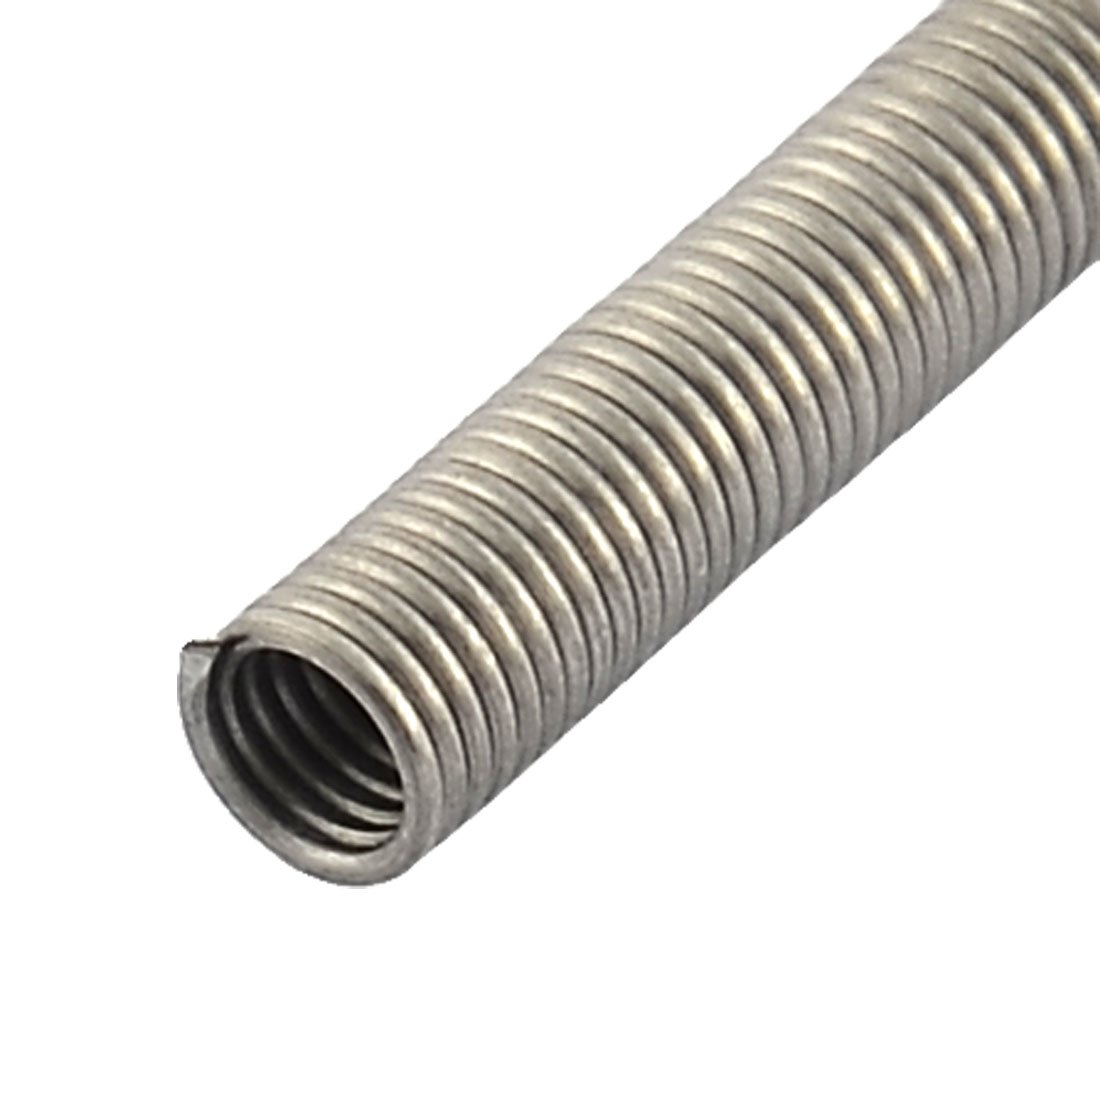 uxcell Heating Element Coil Wire AC220V 2500W AC110V 625W Kiln Furnace Heater Wire 7mm 750mm 10PCS